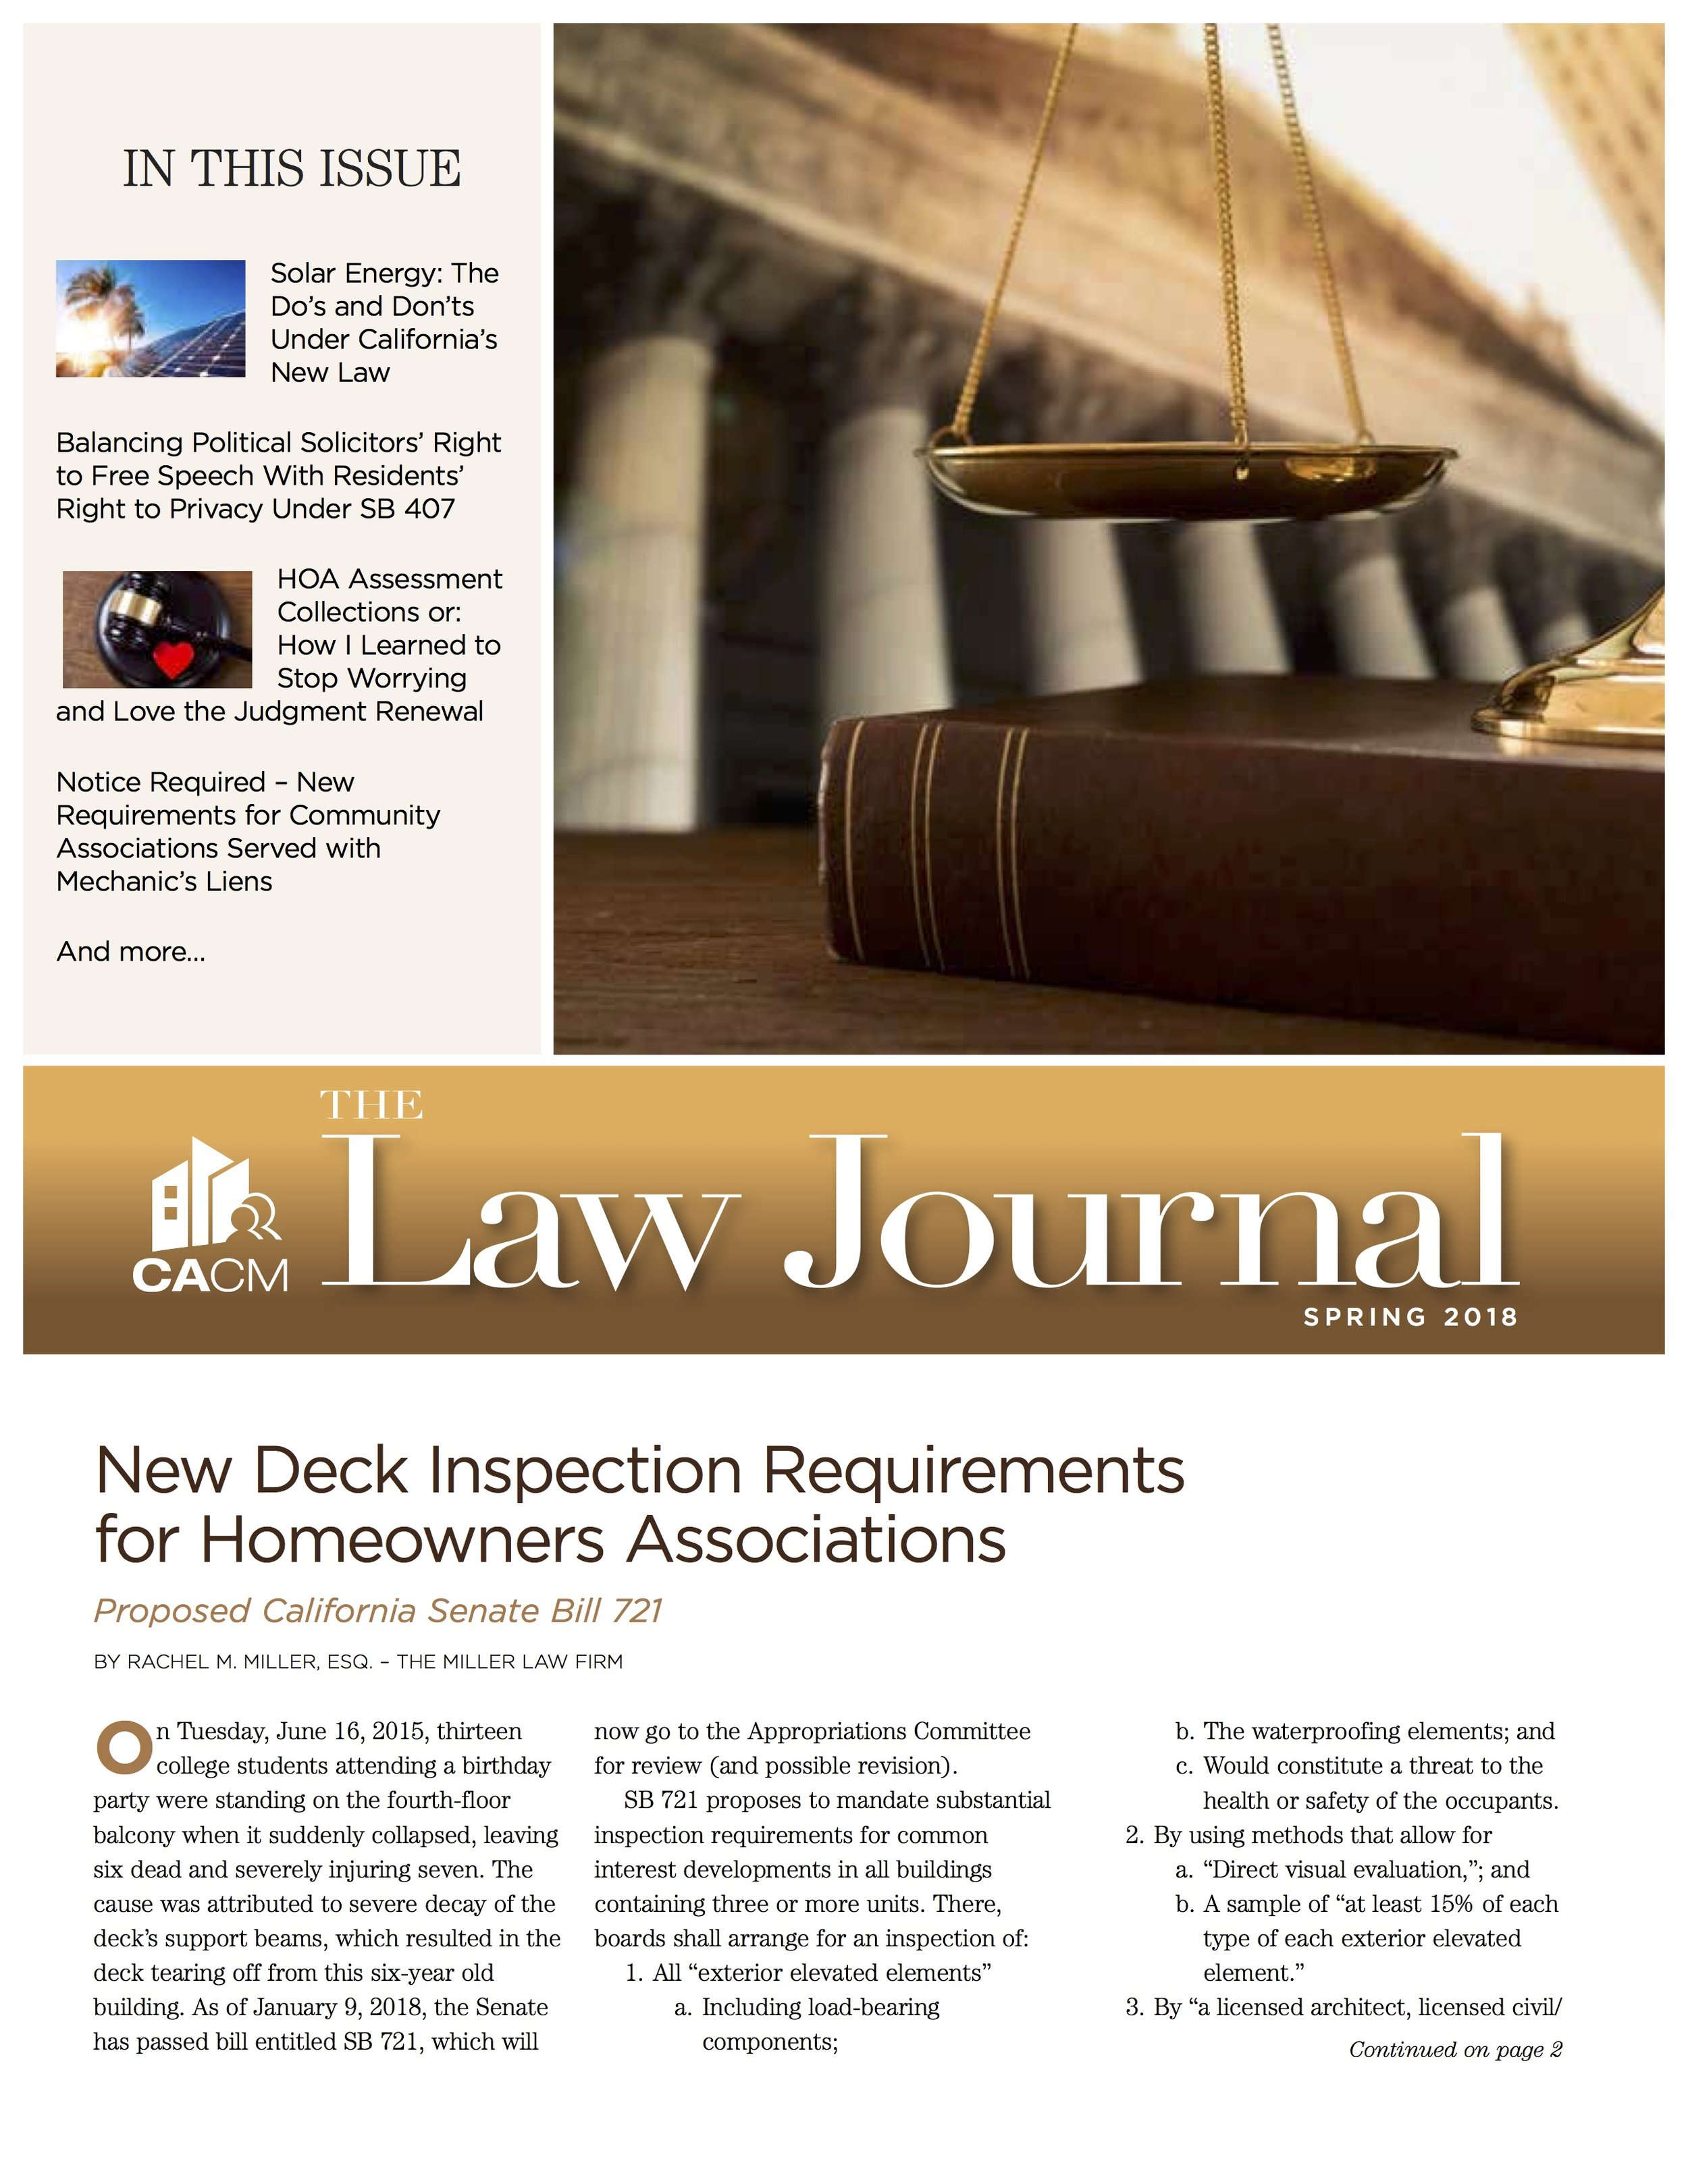 California Association of Community Managers Law Journal Spring Edition - New Deck Inspection Requirements for Homeowners Associations